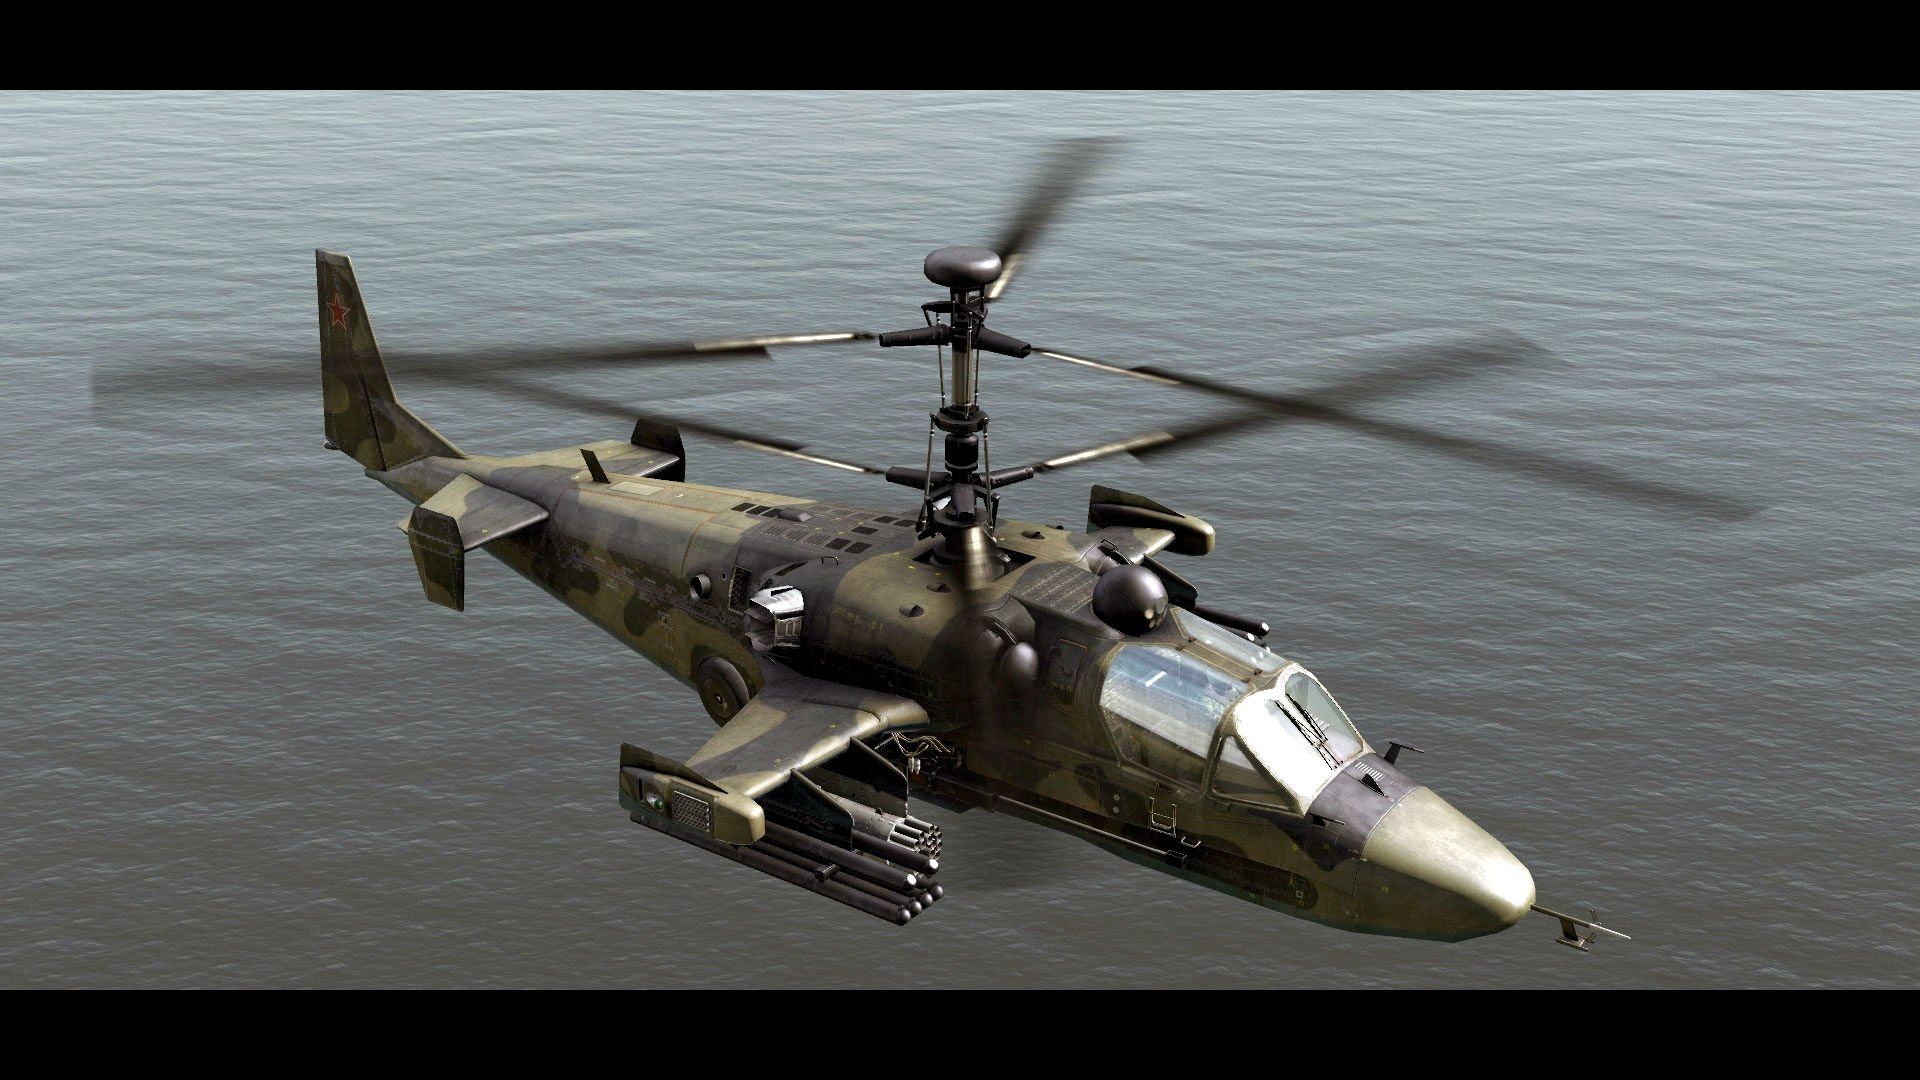 russian helicopters military with Kamov Ka 50 Black Shark Gunship Attack Helicopter Military Russian Russia Soviet Weapon Aircraft  25 on File Mi 35M  3 further  as well This Giant New Helicopter Is Like A Greyhound Bus For The Sky together with Ka 50 1024 005 together with Ka 50 2.